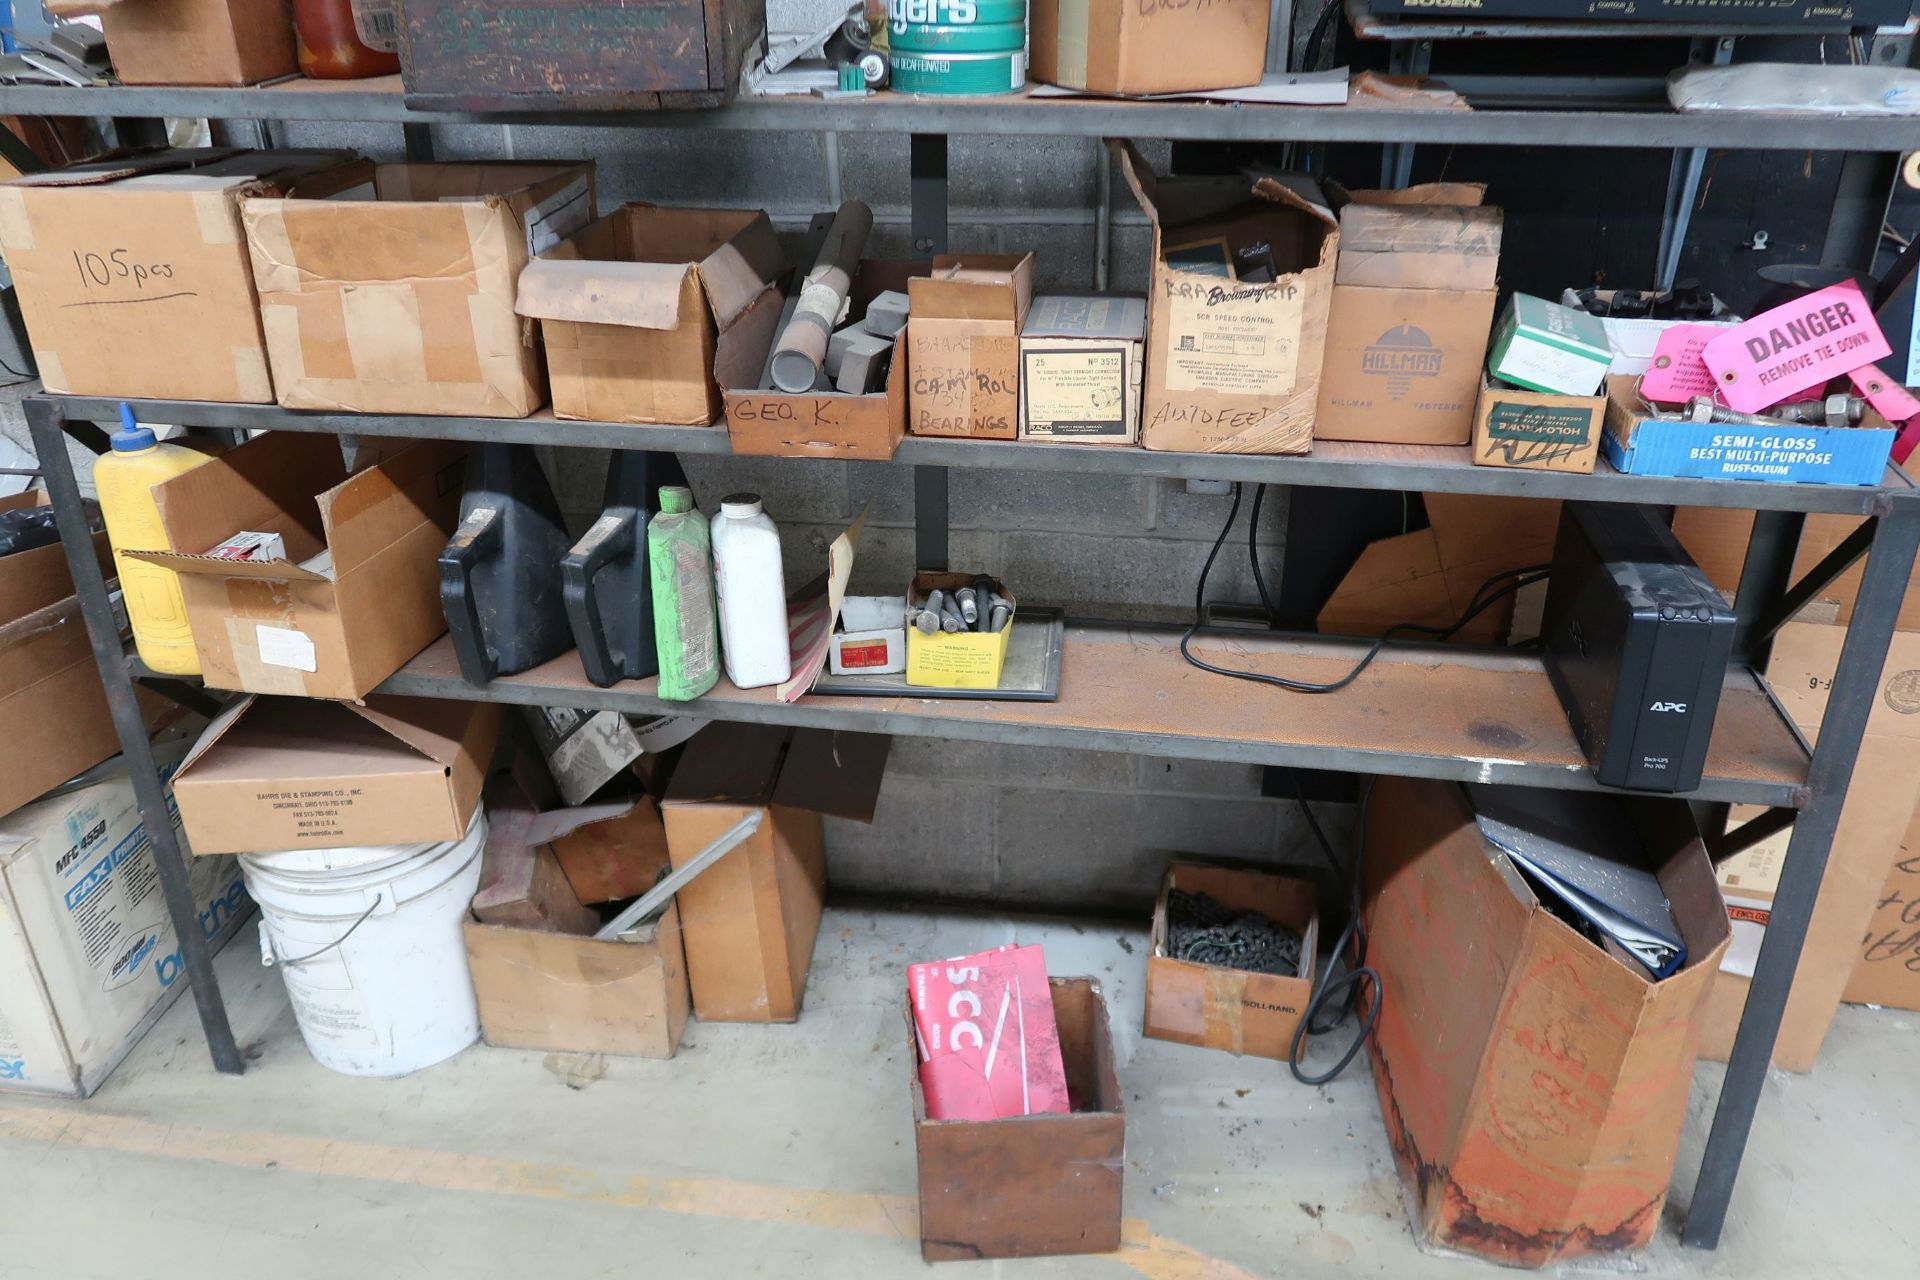 (LOT) CONTENTS OF RACK AGAINST WALL INCLUDING HARDWARE, TOOLS, ELECTRICAL PARTS (NO SOUND SYSTEM) - Image 2 of 6